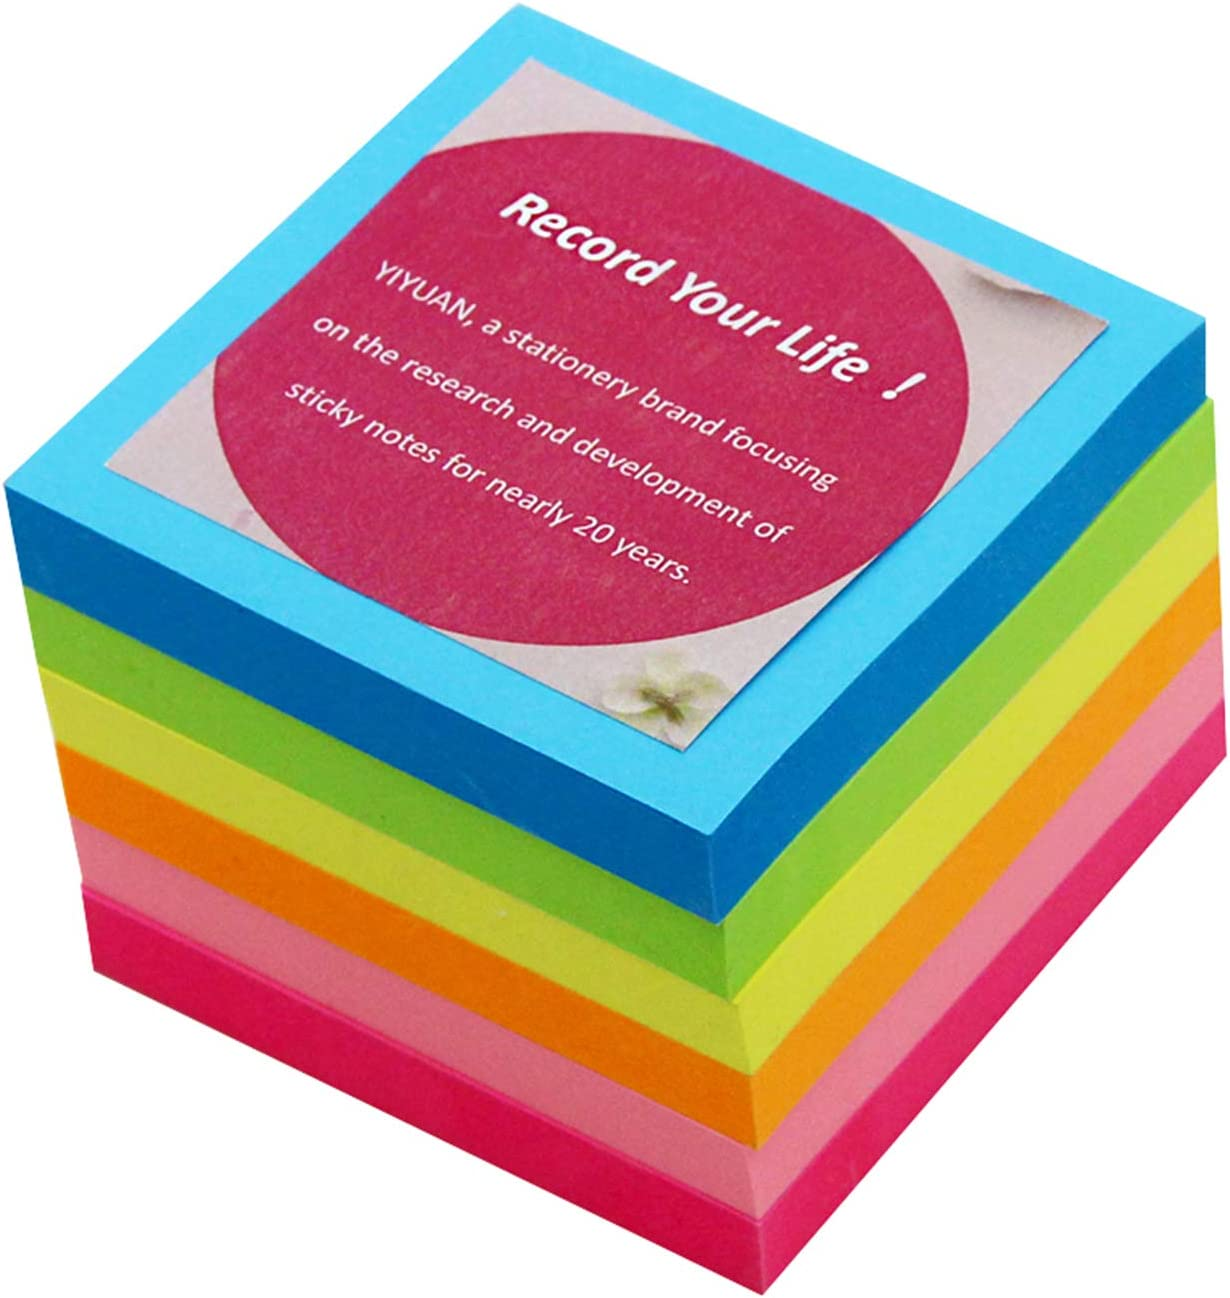 3 Inches Sticky Notes,Bright Colorful Sticky Pads, Assorted Colors, Super Strong Self-Stick Notes,24 Pads/Pack,100 Sheets/pad, for Reminders, Home, School, and Office (6 PACK)